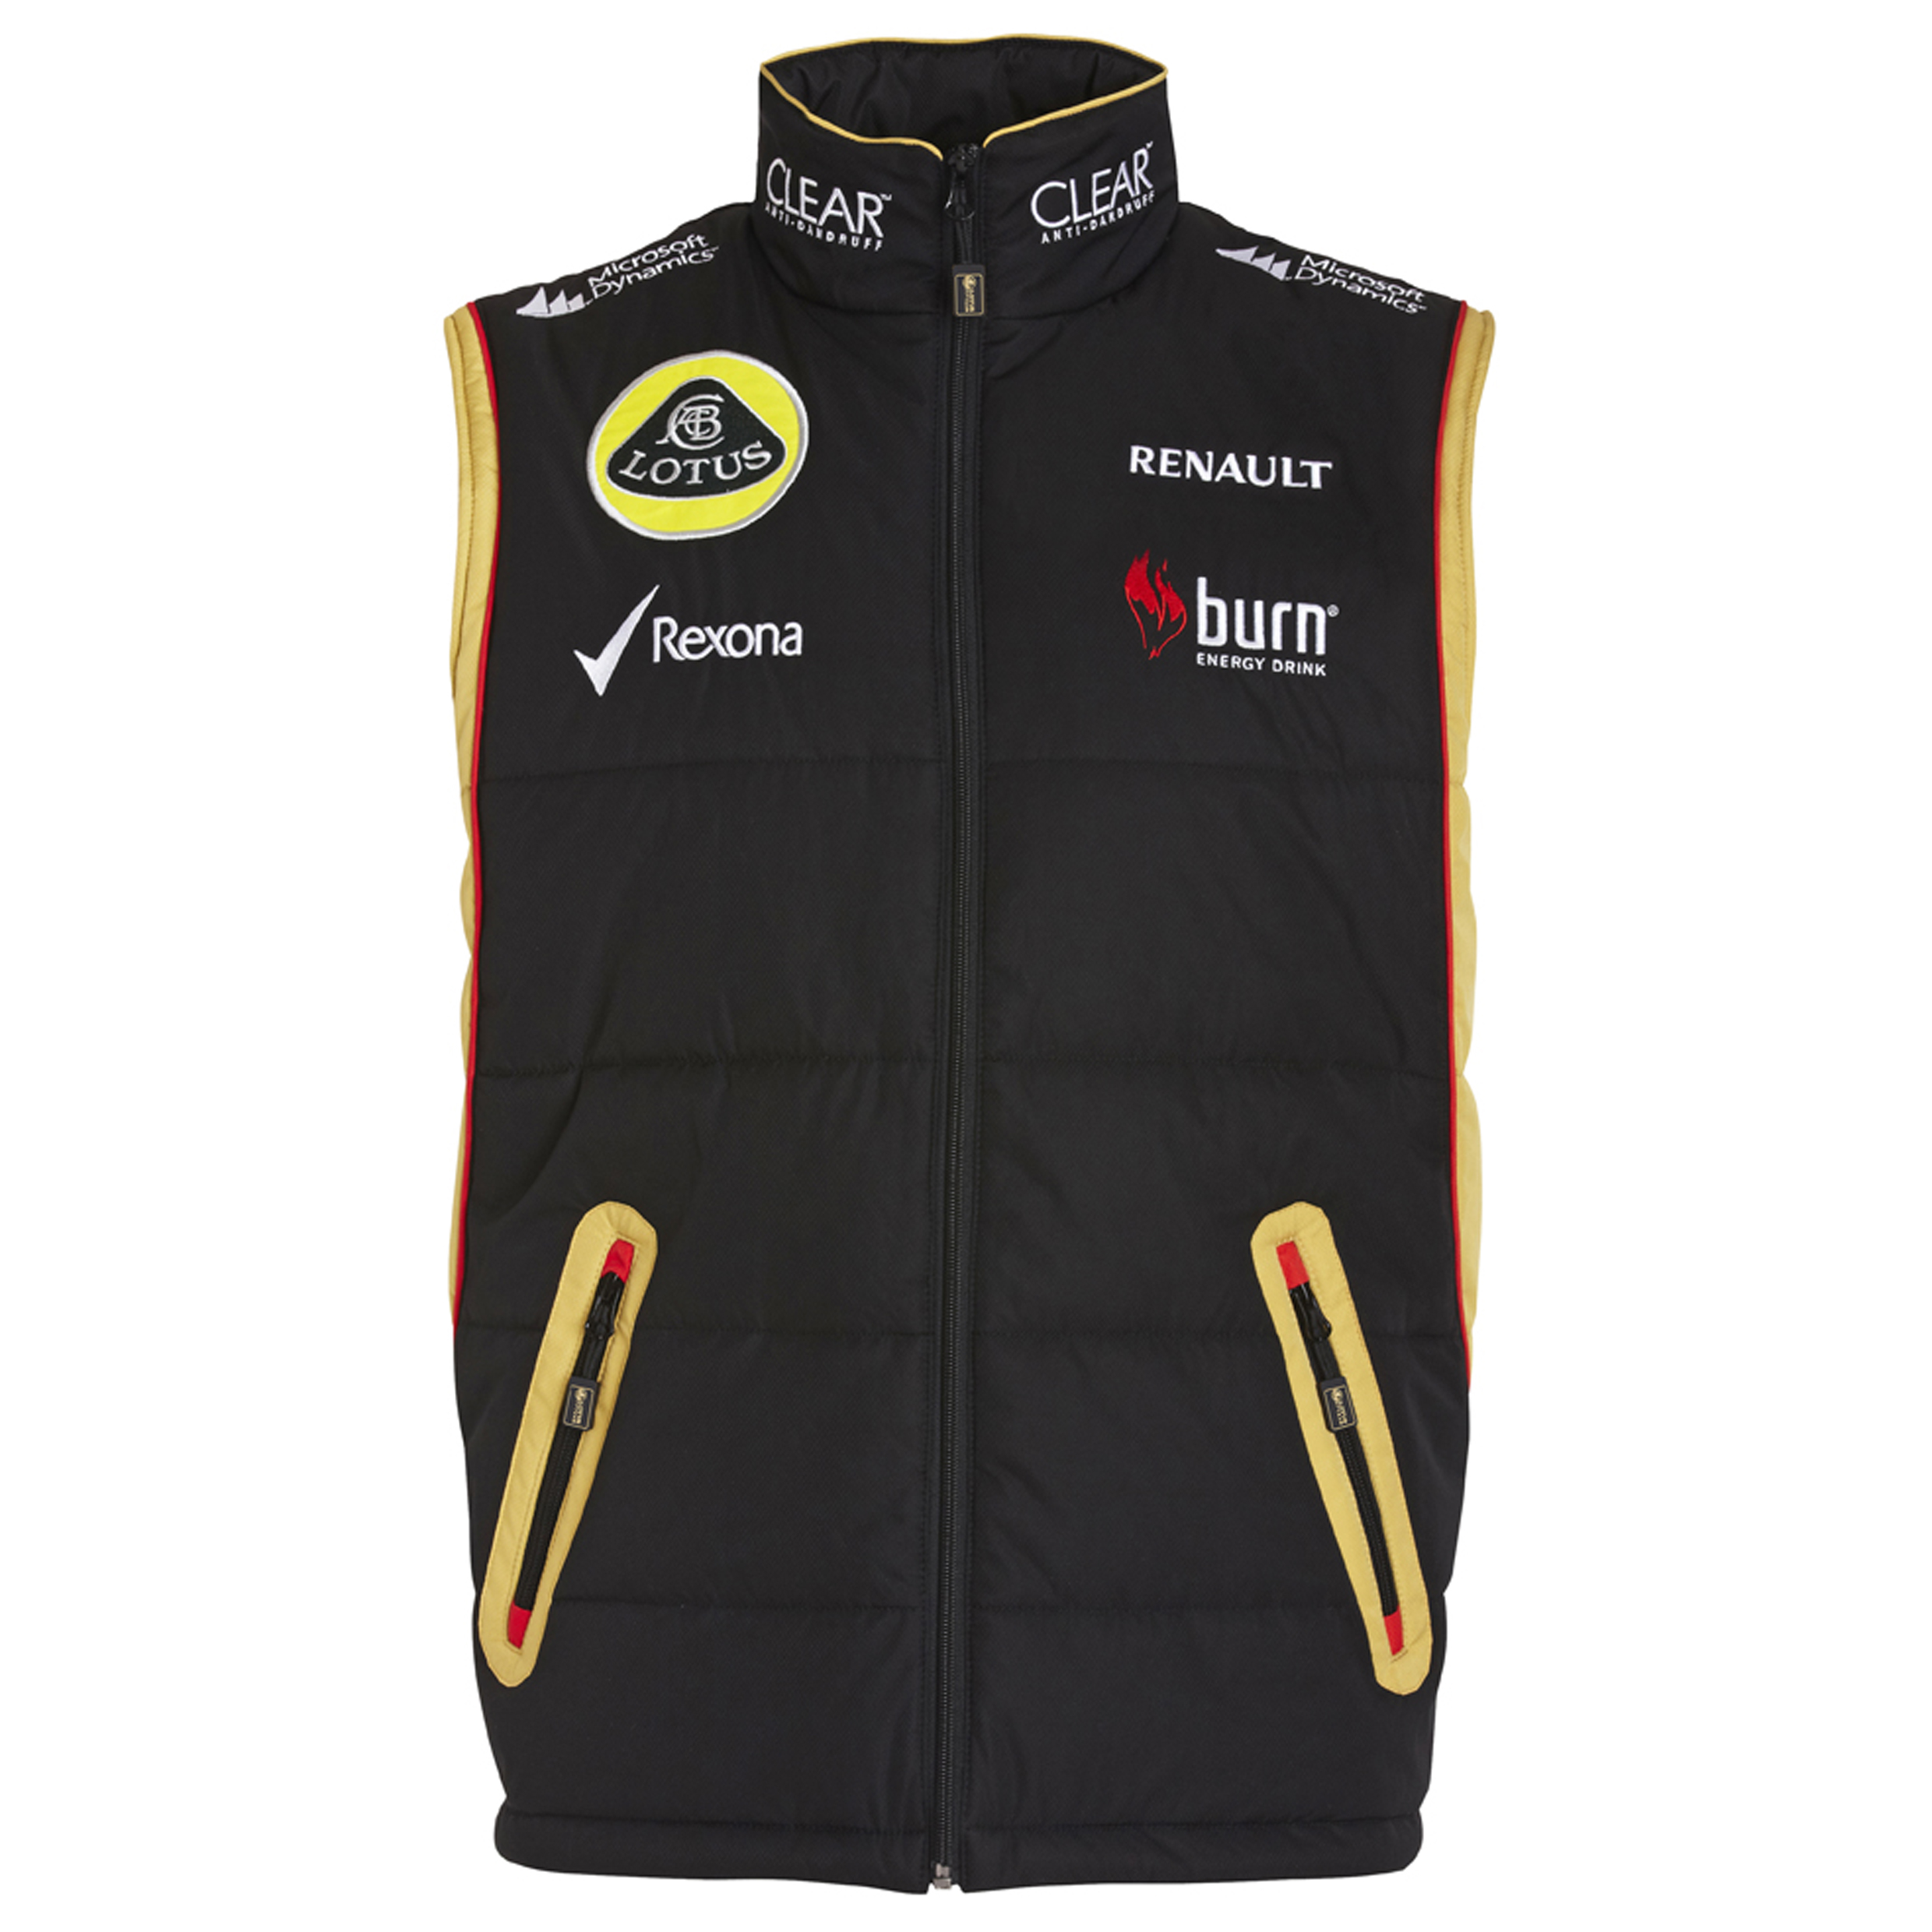 Lotus F1 Team 2013 F1 Unisex Replica Gilet